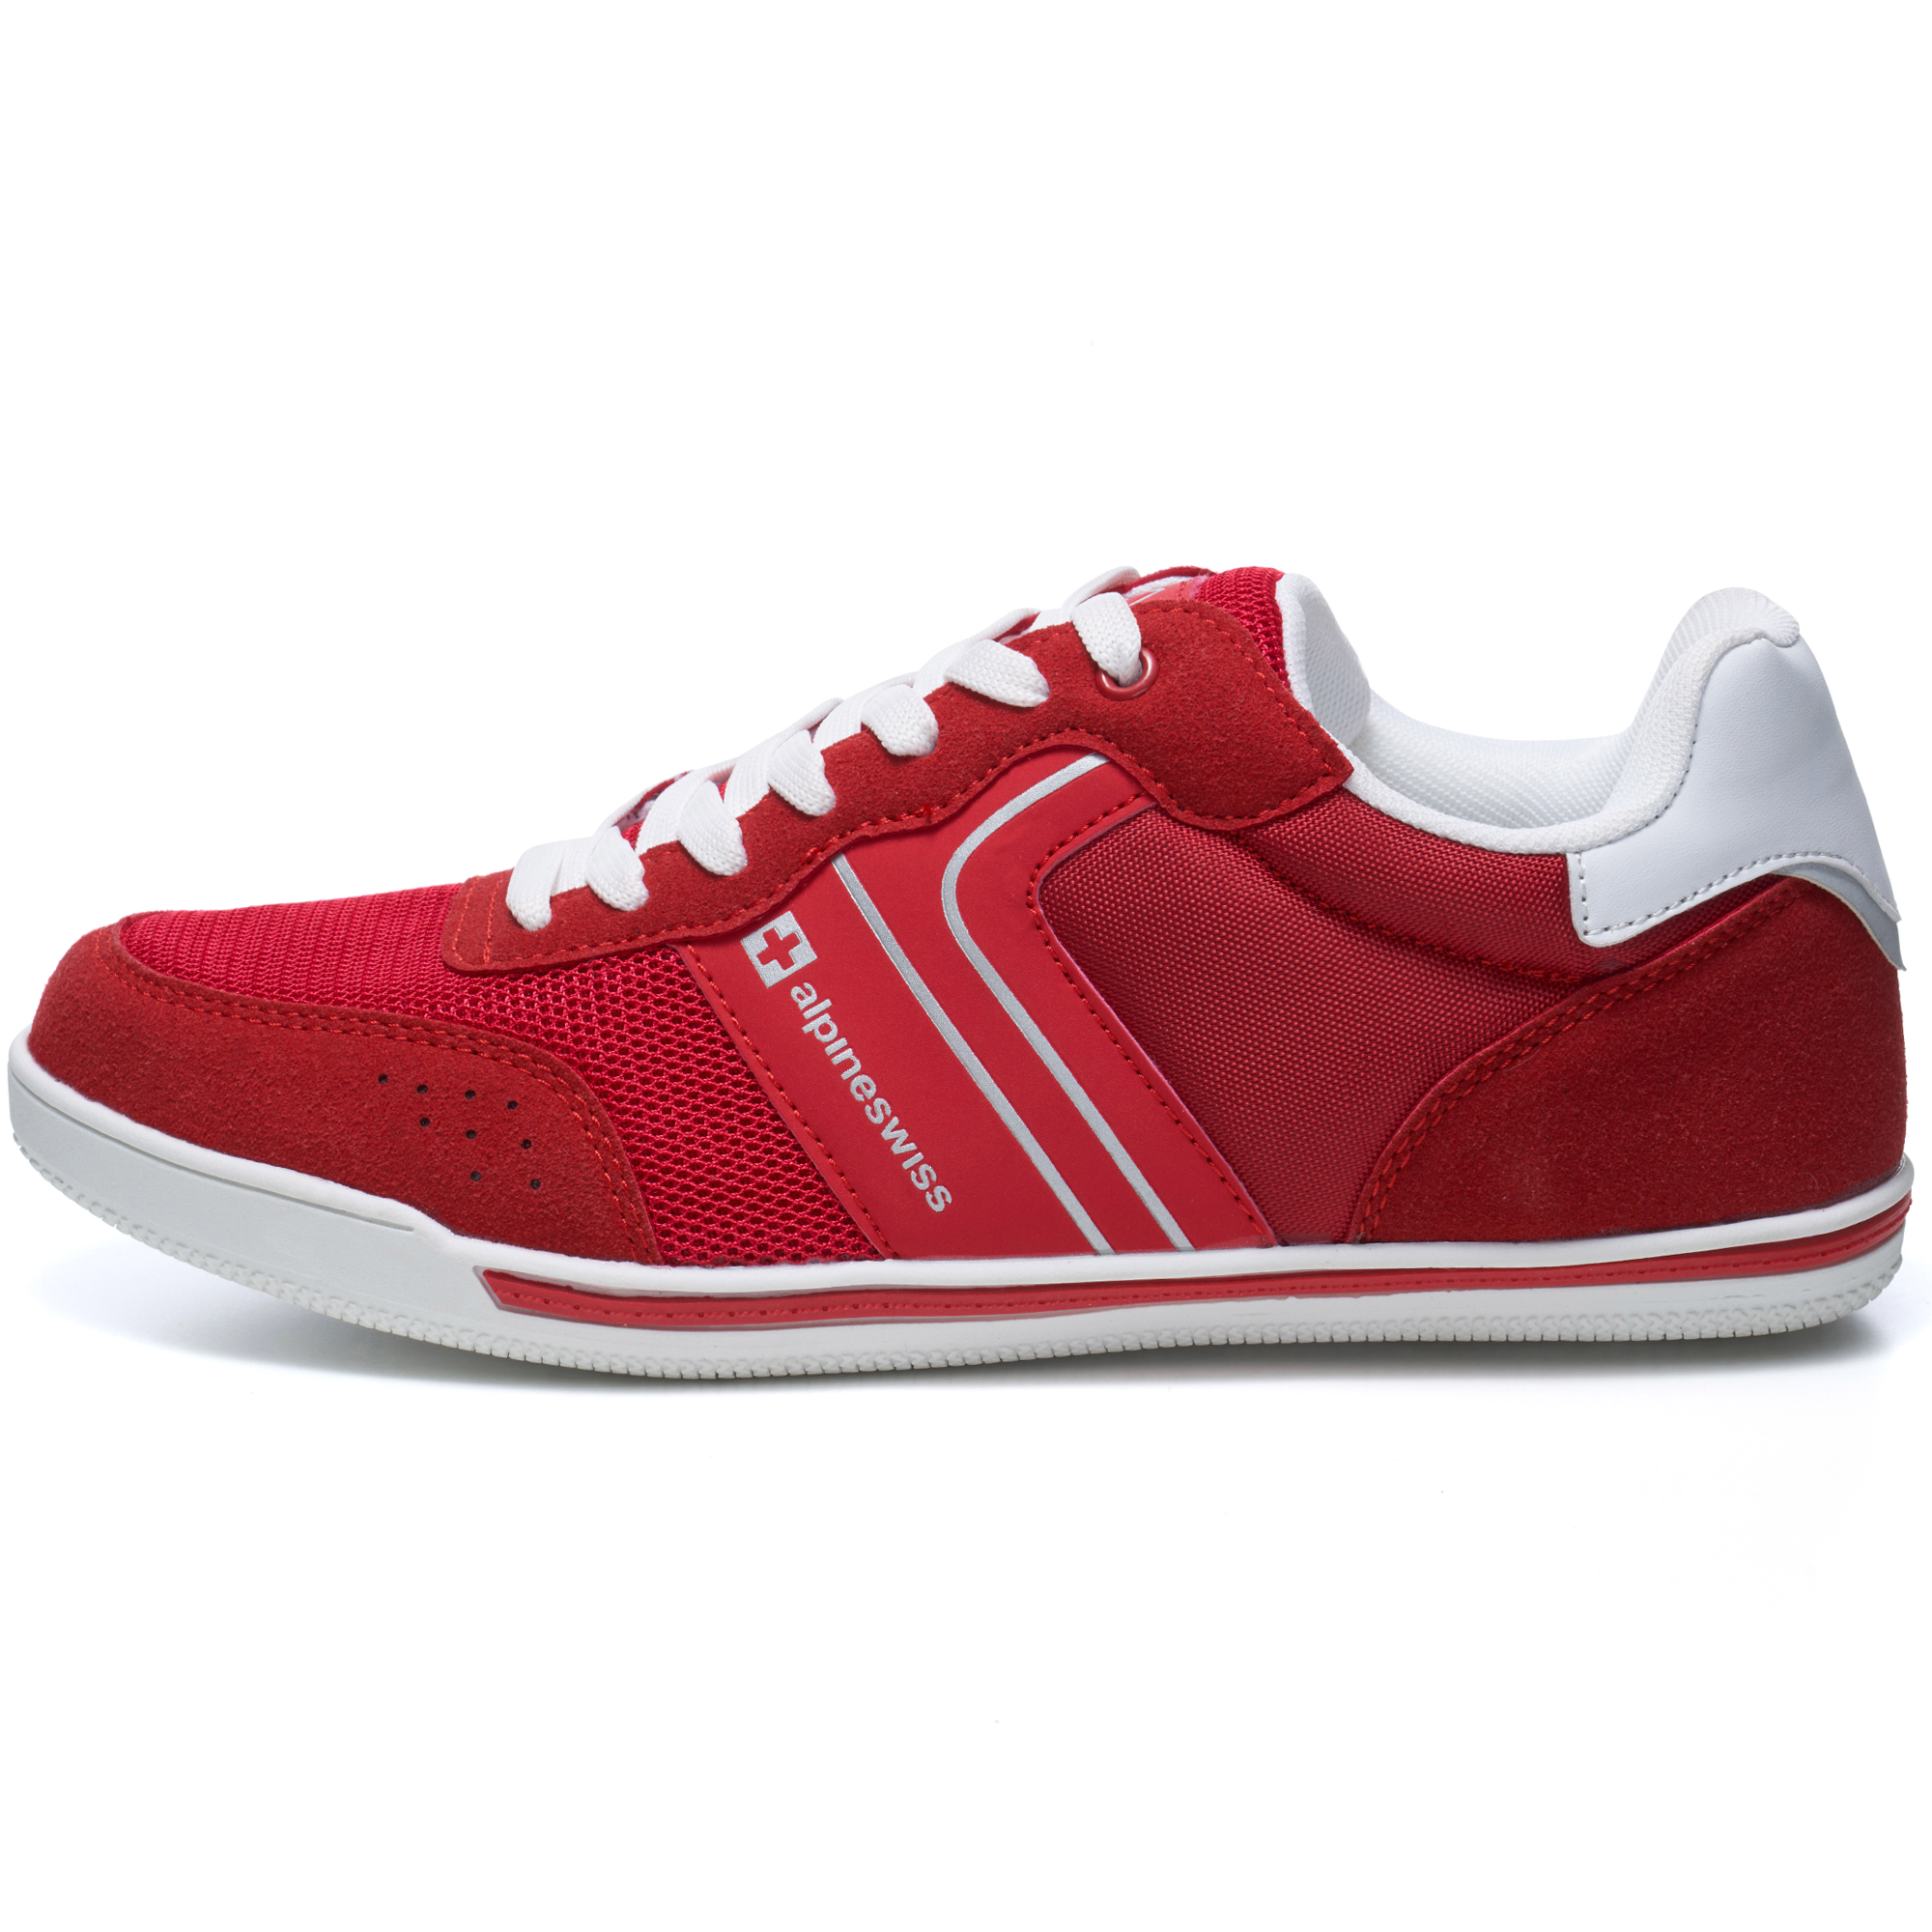 Alpine-Swiss-Liam-Mens-Fashion-Sneakers-Suede-Trim-Low-Top-Lace-Up-Tennis-Shoes thumbnail 50